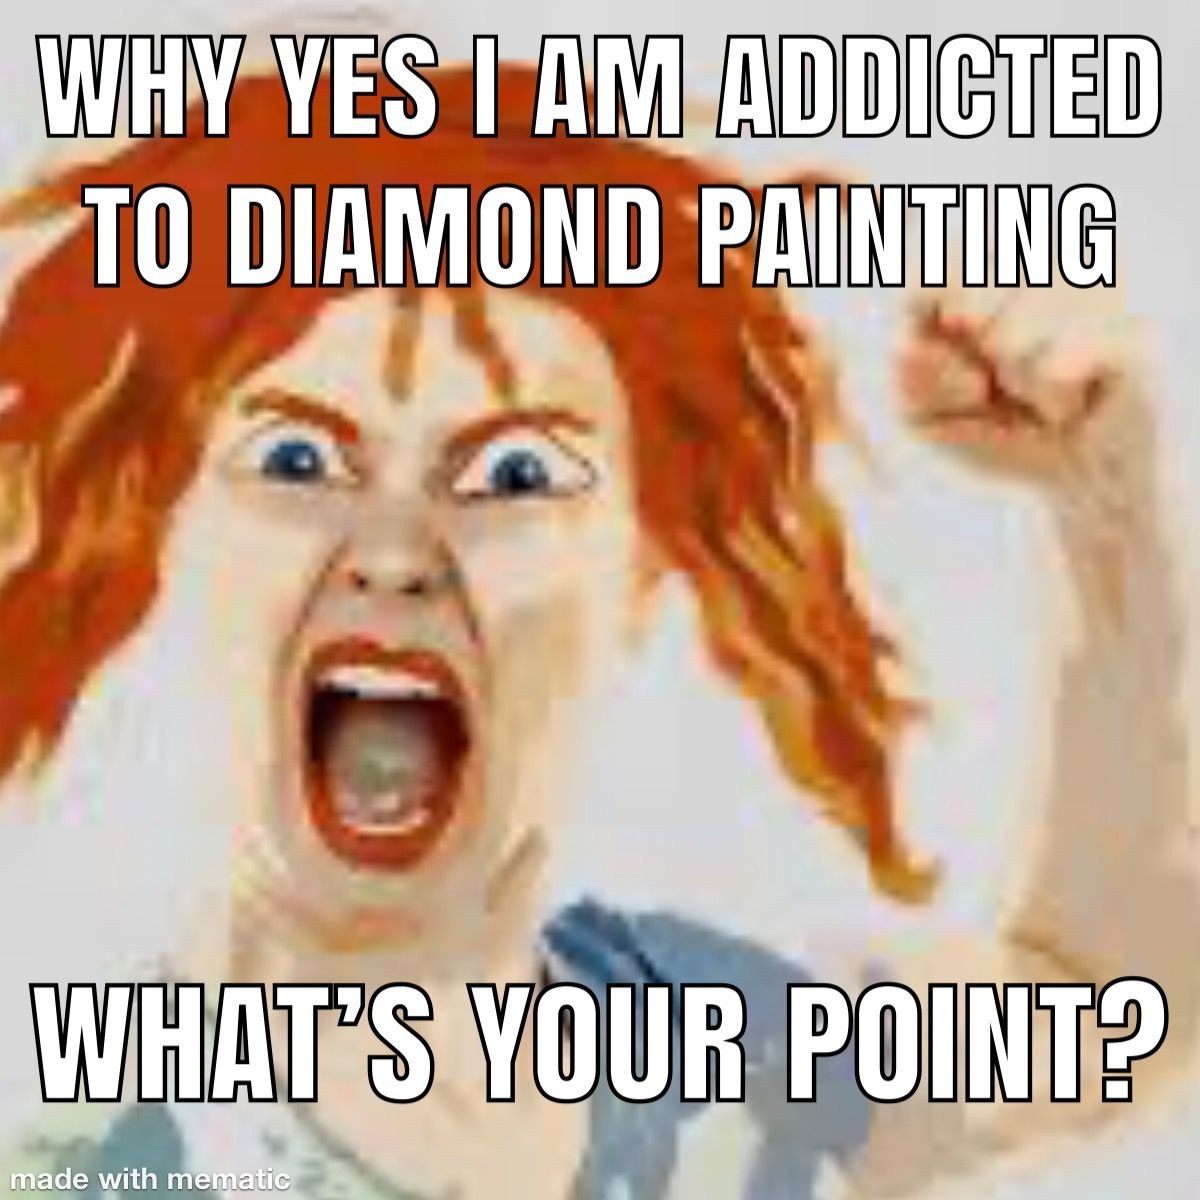 #diamondpainting #5ddiamondpainting #diycraft #diamondpaintingdiy #diyhomedecor #diamondpaintings #craft #fun #crafty #diy #gift #howtodiy #hobby #fun #giftidea #paintwithiamonds #paintbydiamonds #5ddiydiamondpainting #diamondpaintingkit